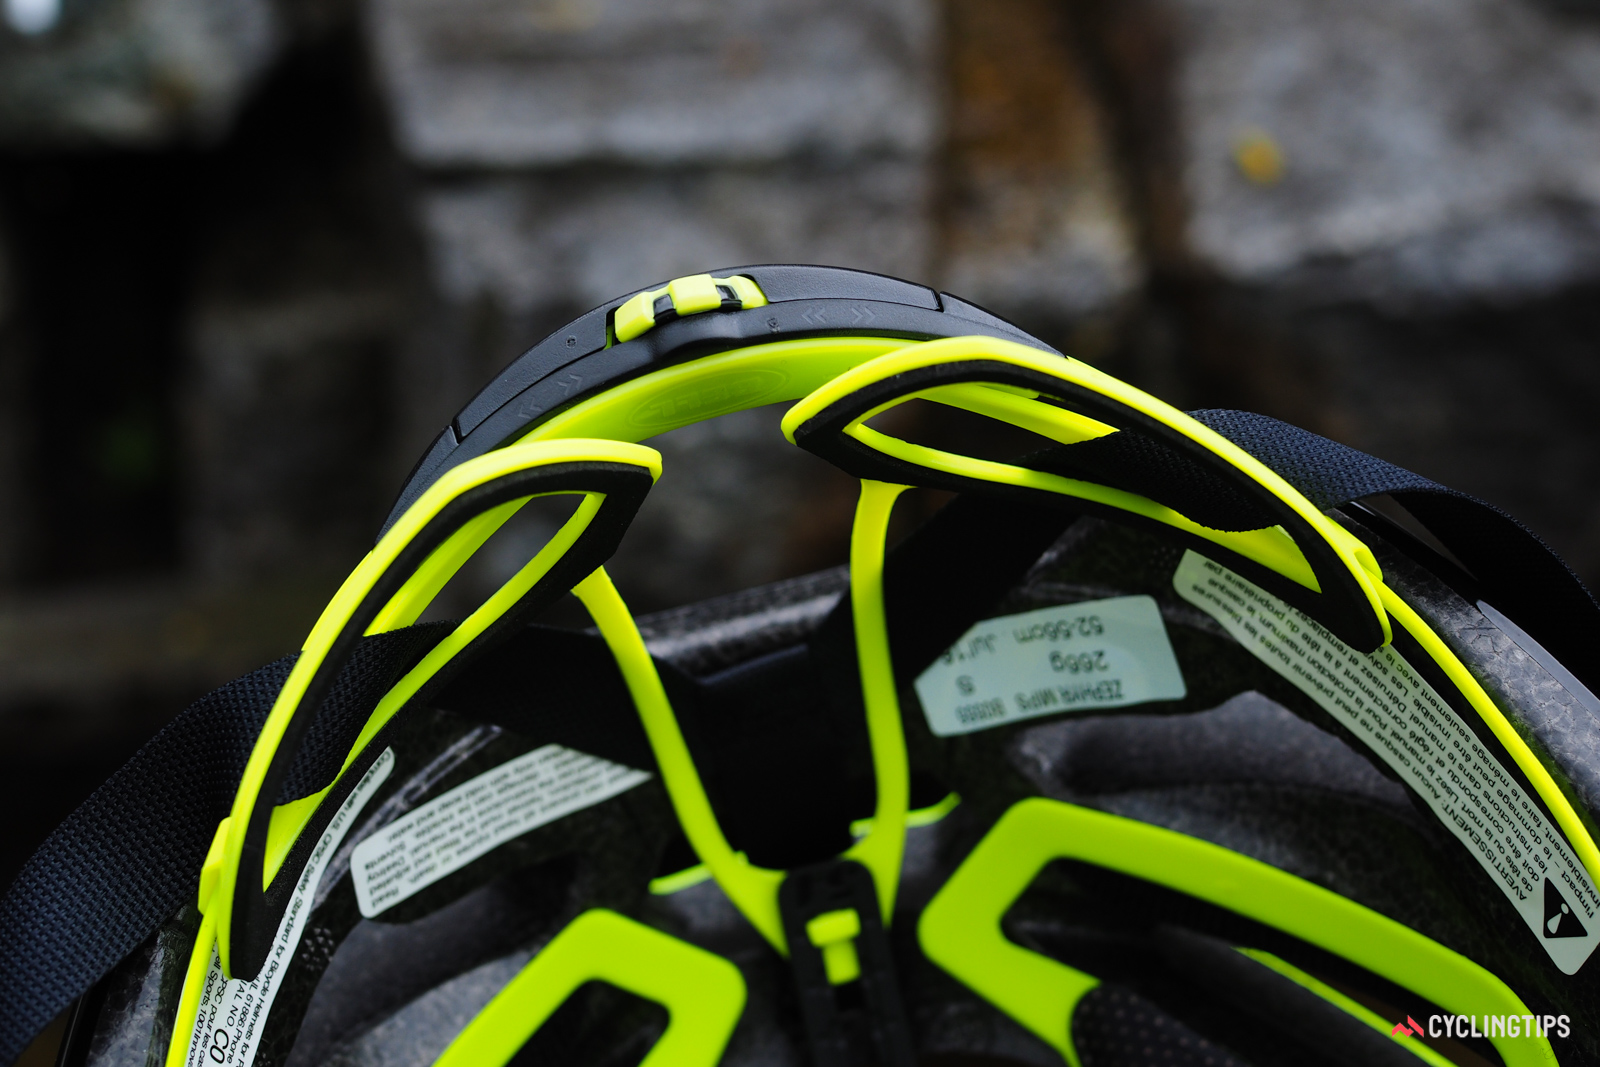 The spacing on the rear pads on the retention system can be adjusted for width. They're also lightly padded with a softer co-molded rubber to enhance their grip on your head.